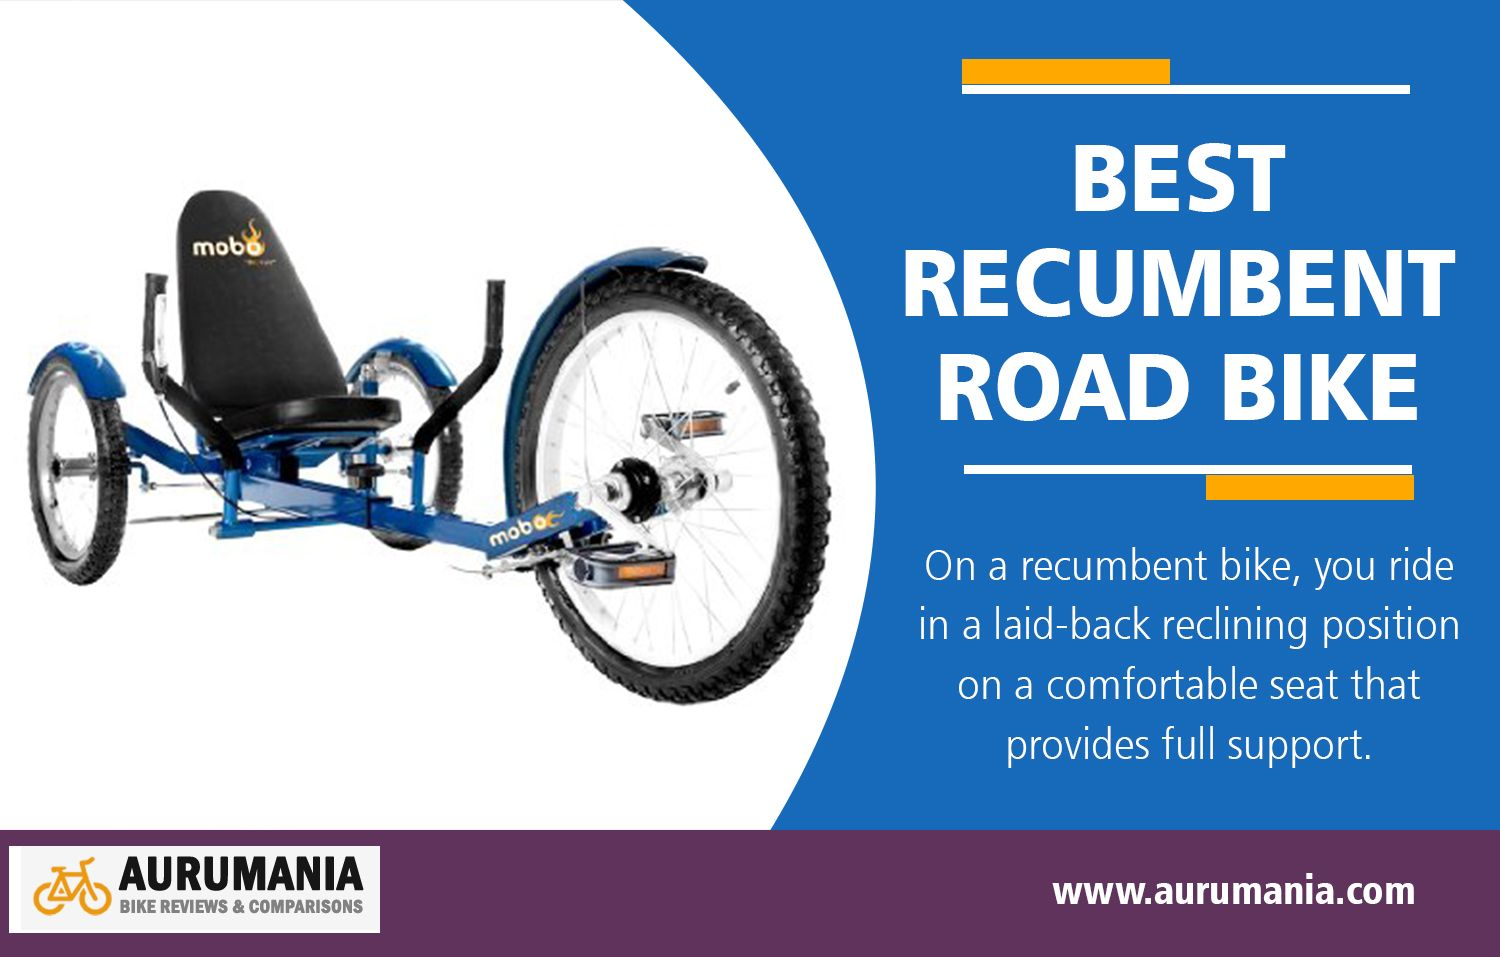 5 Best Recumbent Road Bikes Of 2019 With Reviews And Comparison